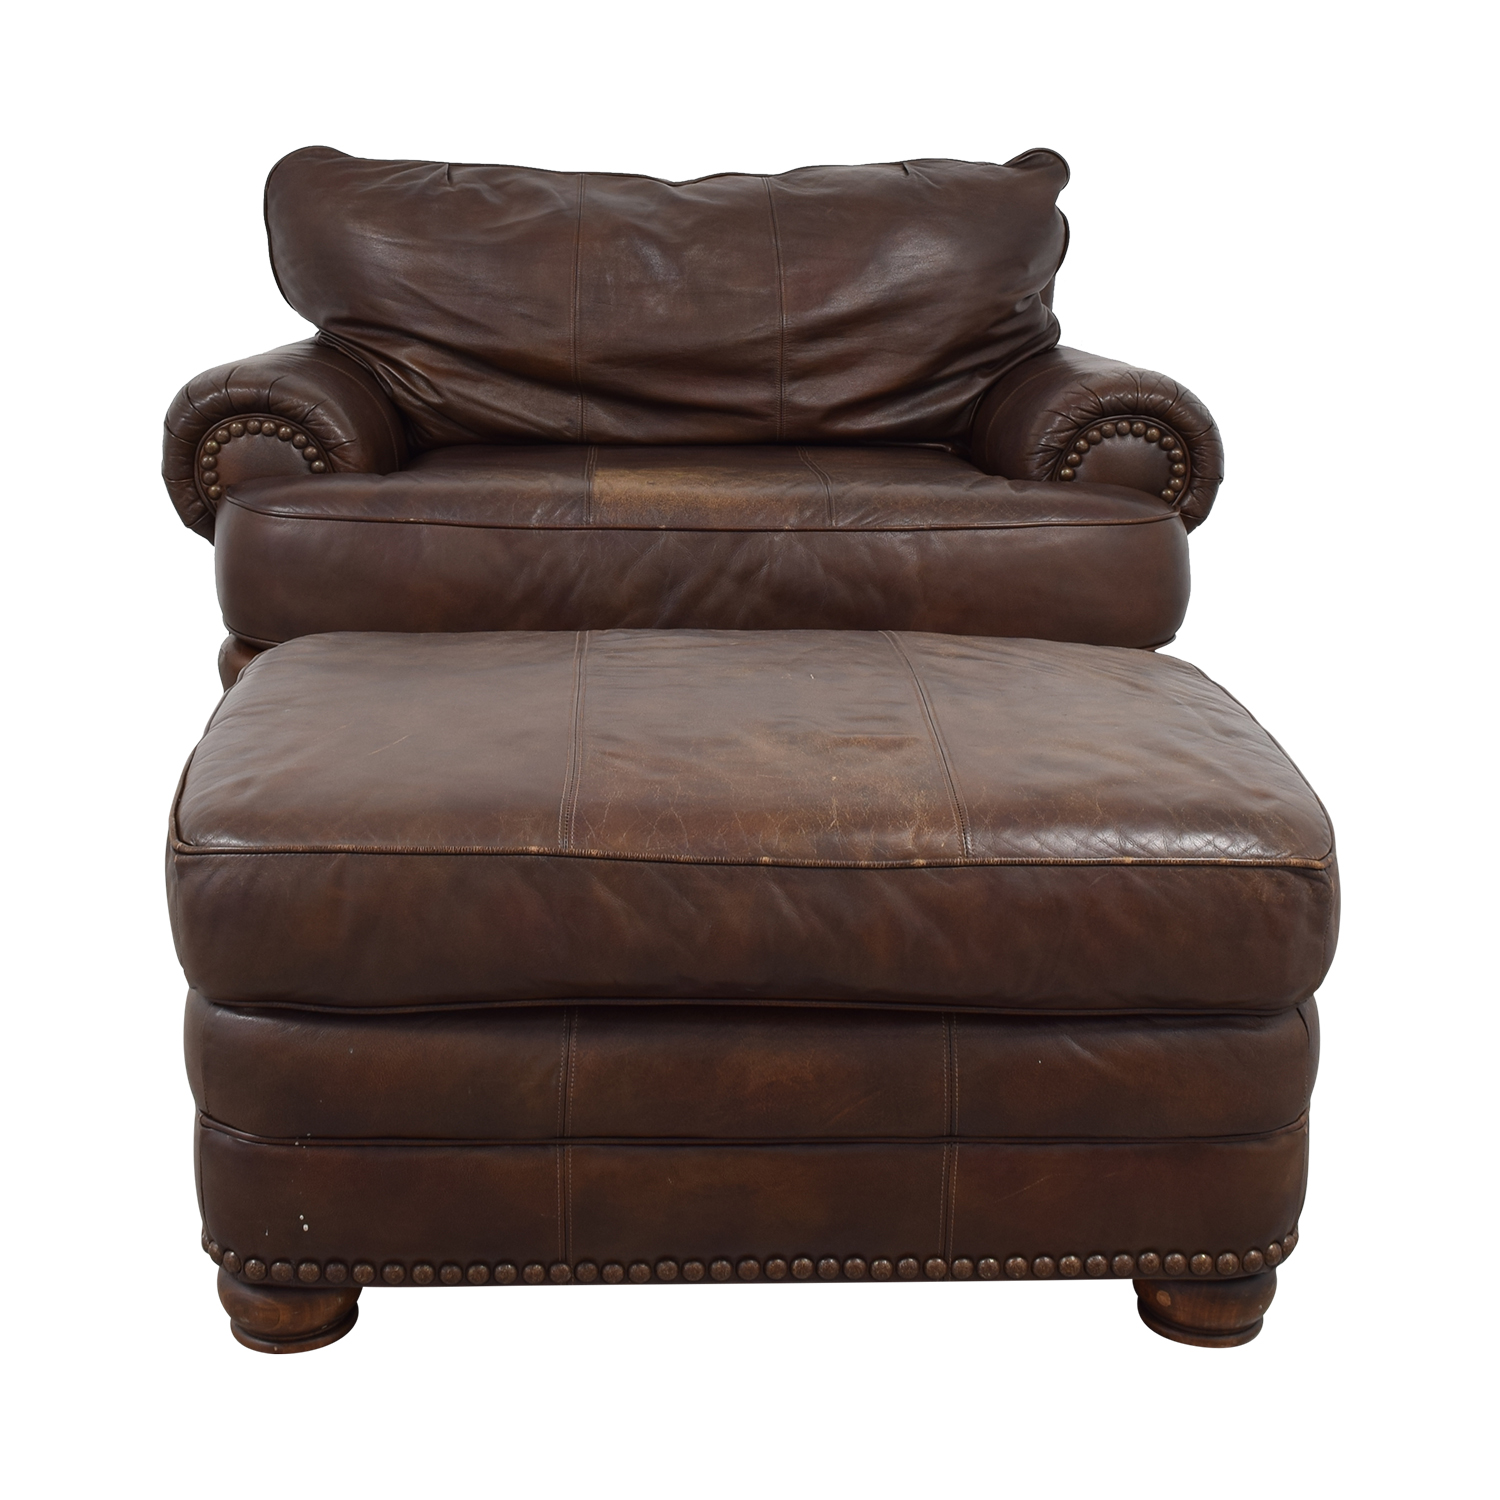 68 Off Lane Furniture Lane Furniture Brown Leather Chair And Ottoman Chairs